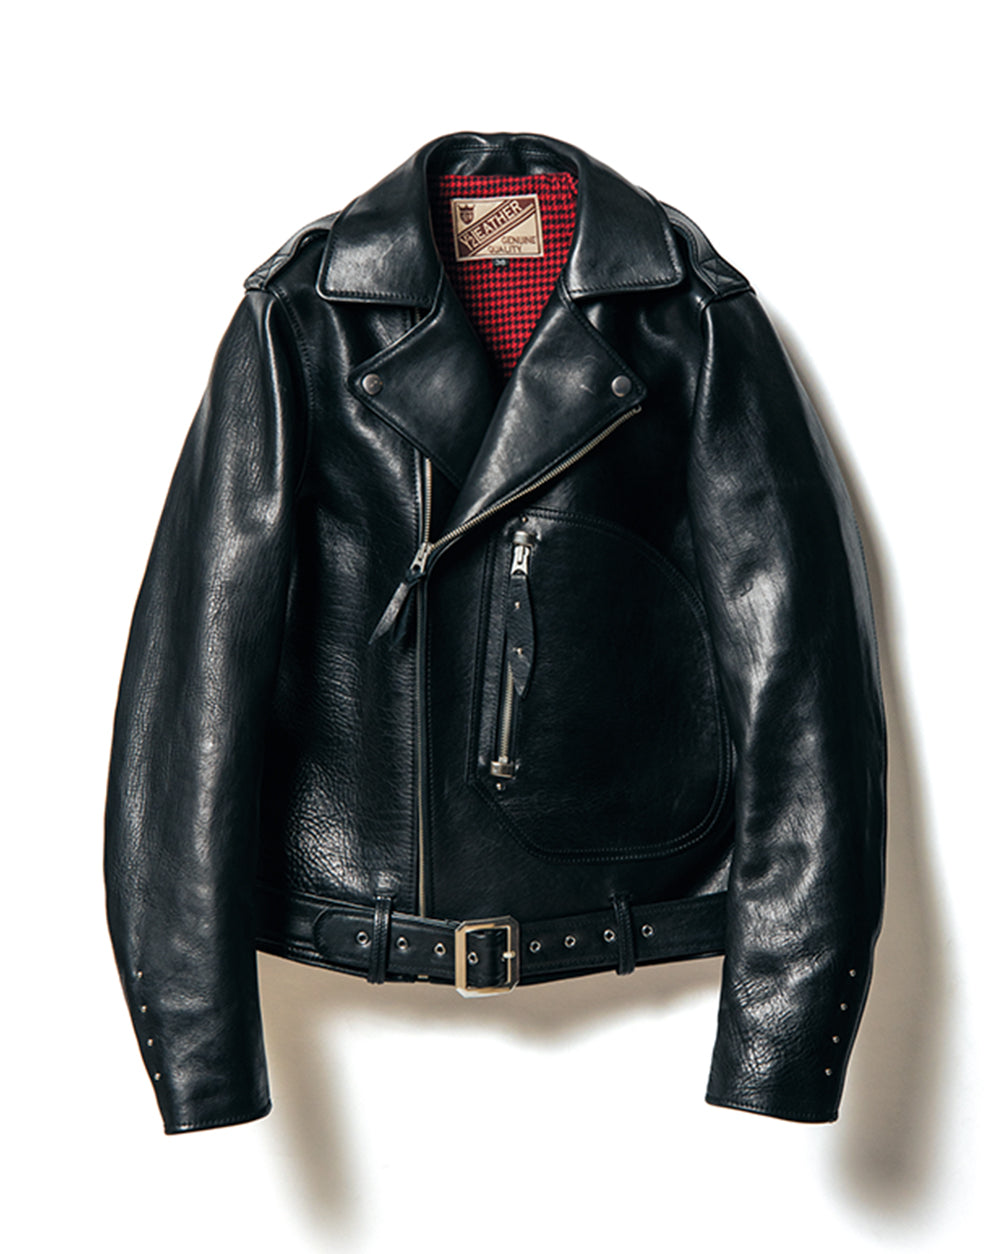 Crafted to Order: Eco Horse 1930's D-Pocket Double Rider Motorcycle Jacket (YS-02)